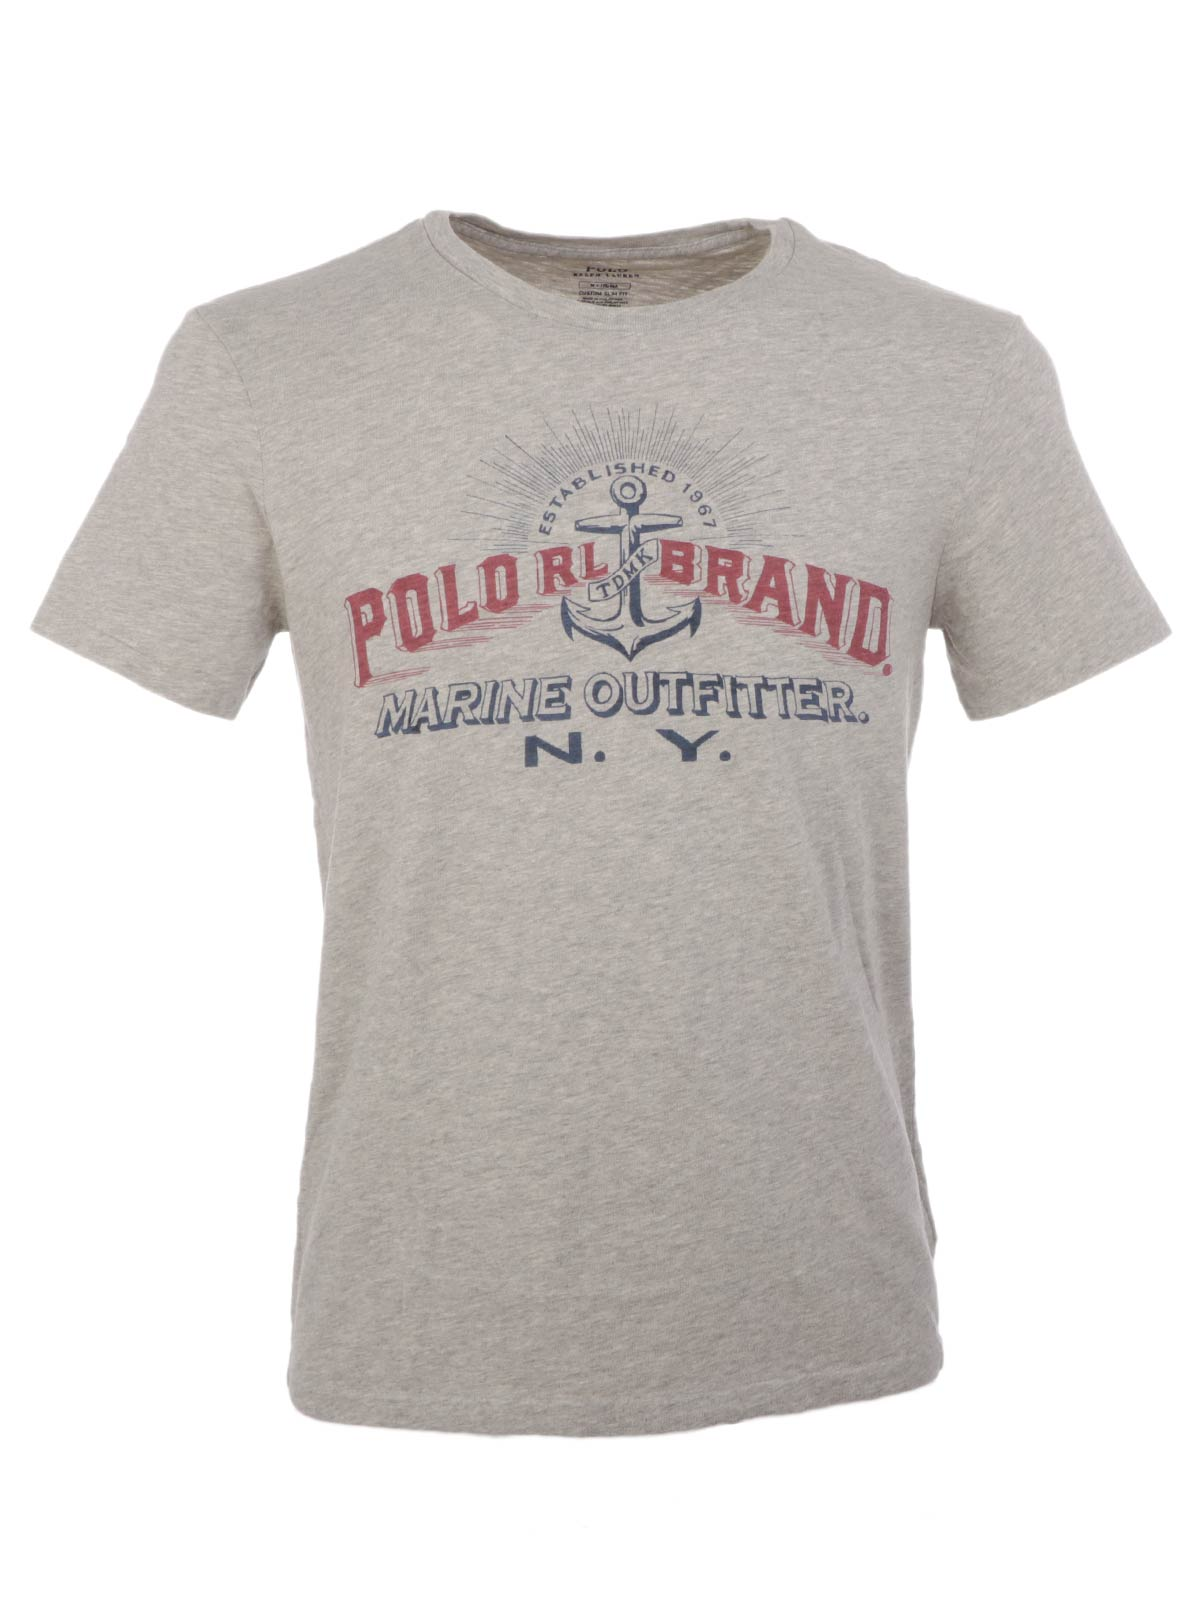 Picture of POLO RALPH LAUREN | Men's Marine Outfitter T-shirt